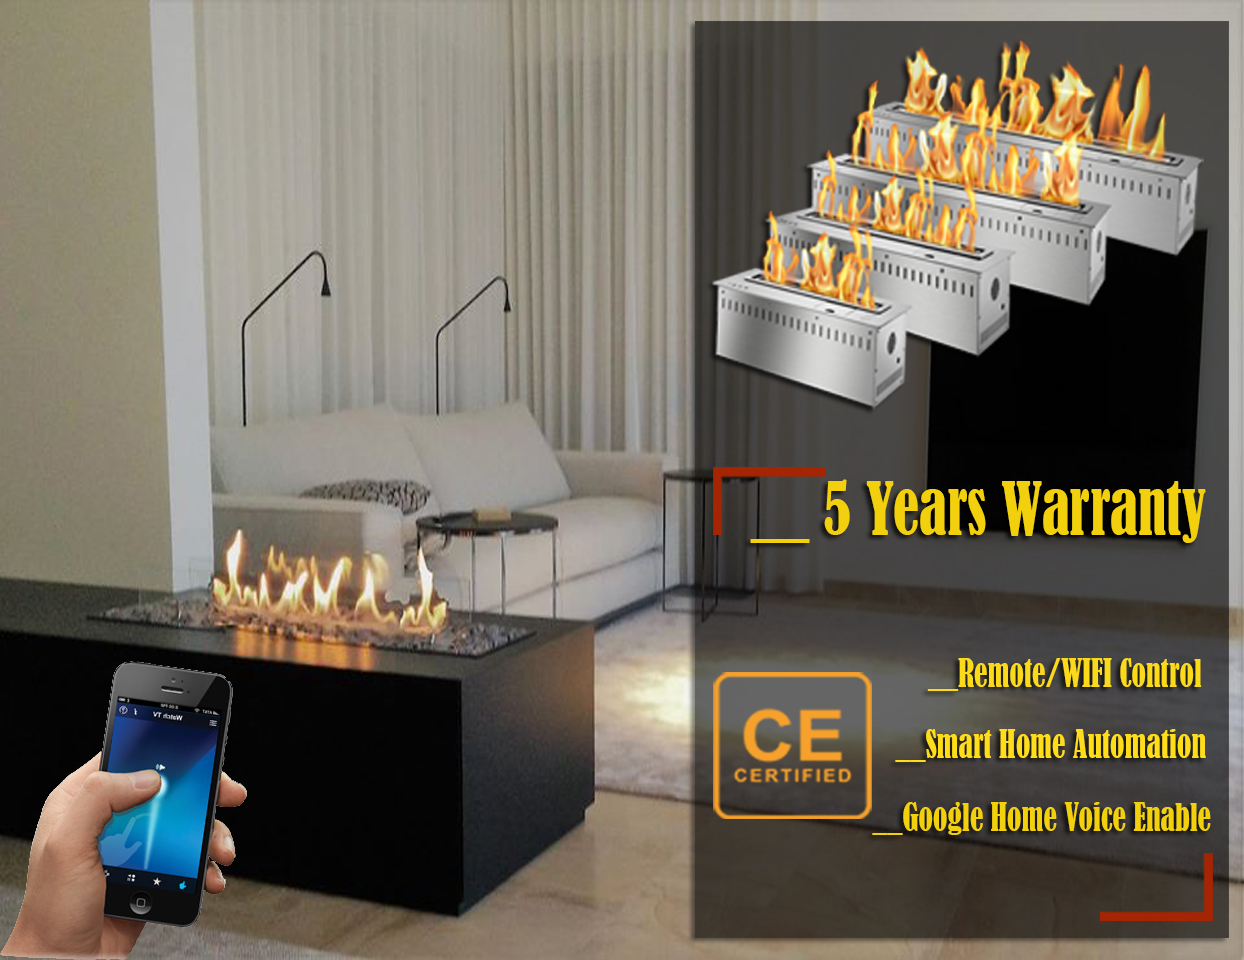 Hot Sale 72 Inches Intelligent Alcohol Fireplace Remote Control Bio Ethanol Burners